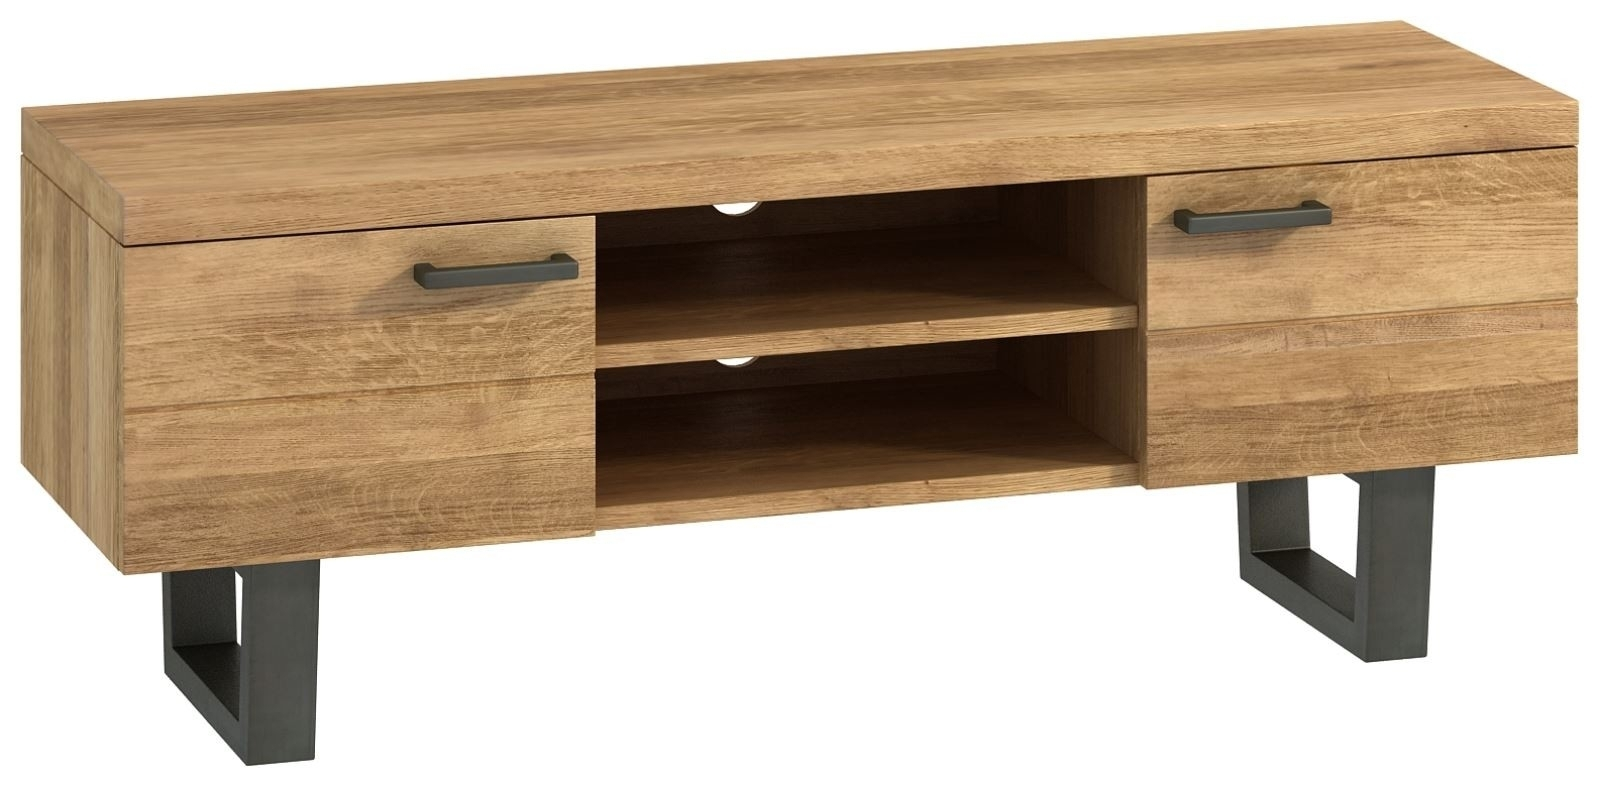 Fusion Tv Unit - Style Our Home intended for Leven Wine Sideboards (Image 11 of 30)